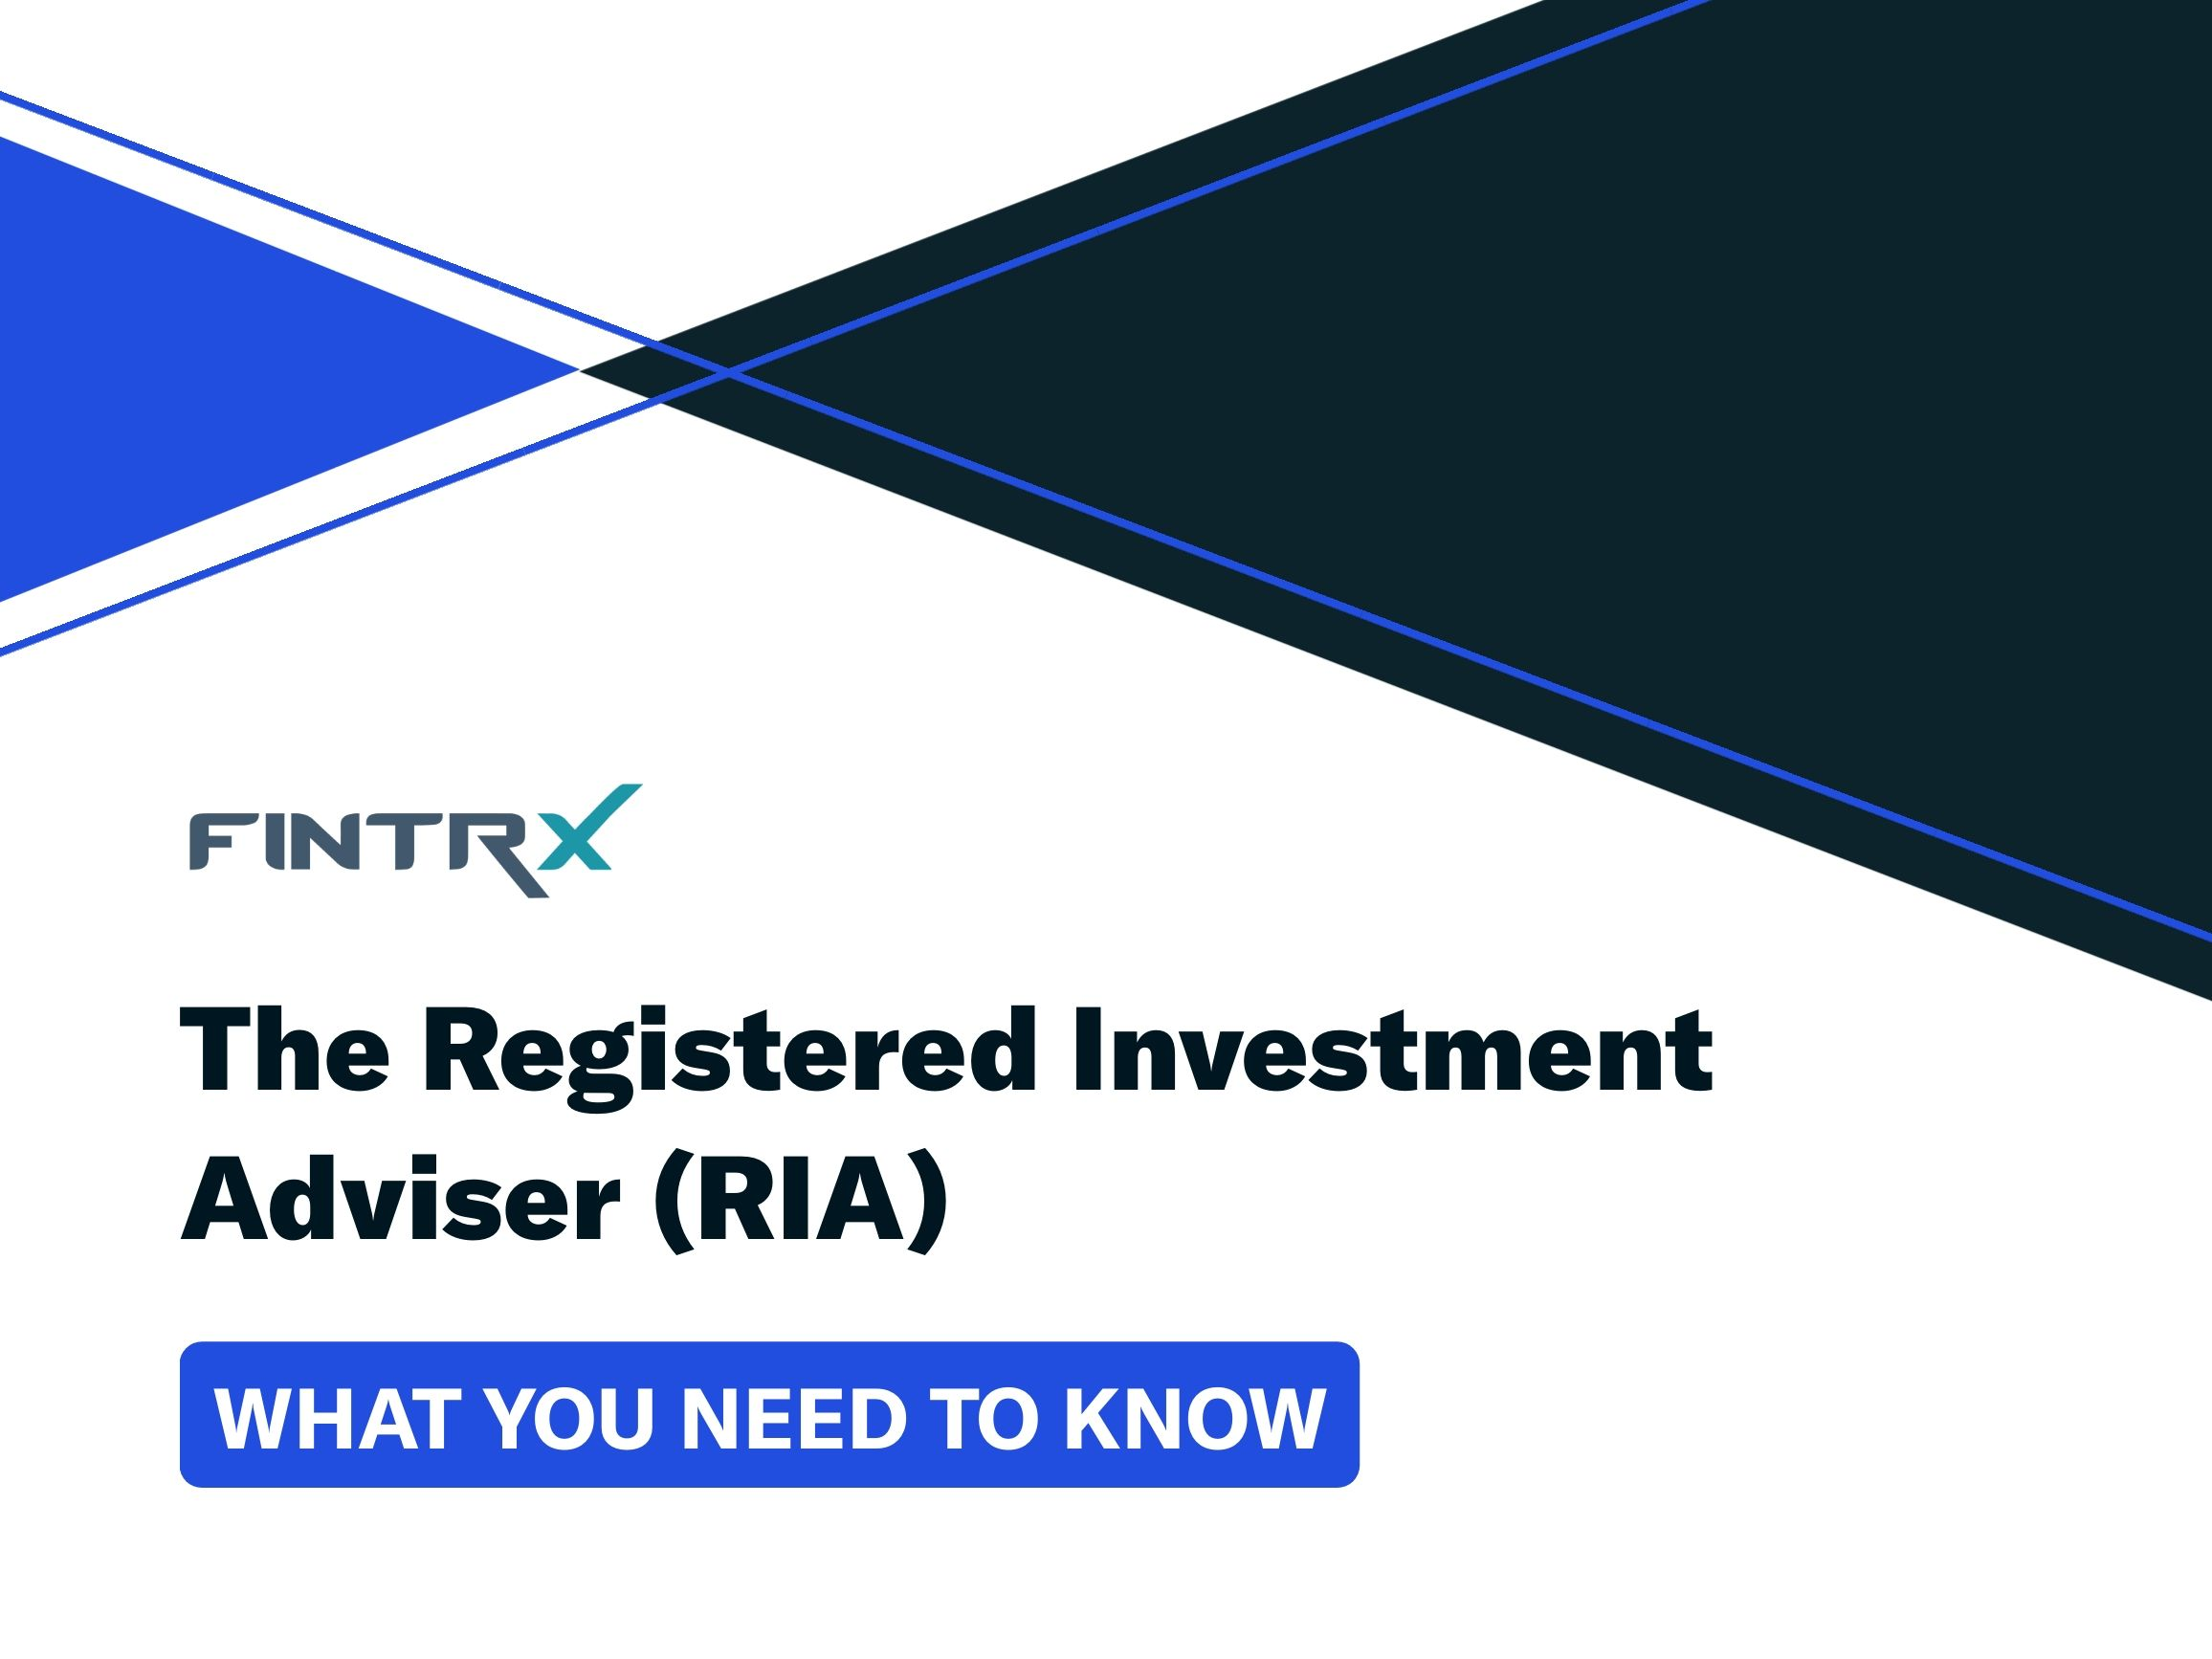 The Registered Investment Adviser (RIA): What You Need To Know